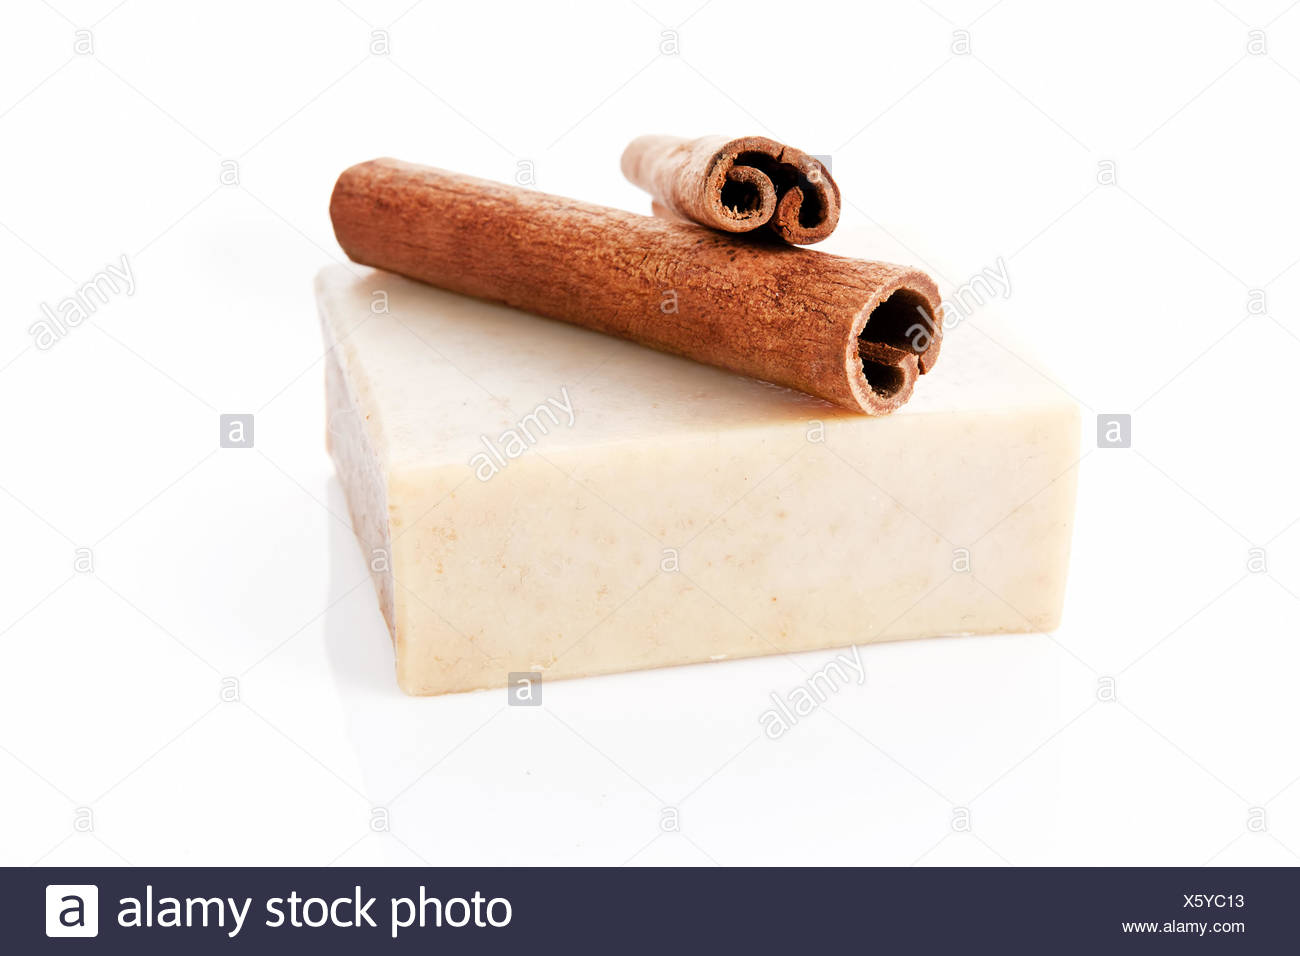 Square soap bar isolated. - Stock Image